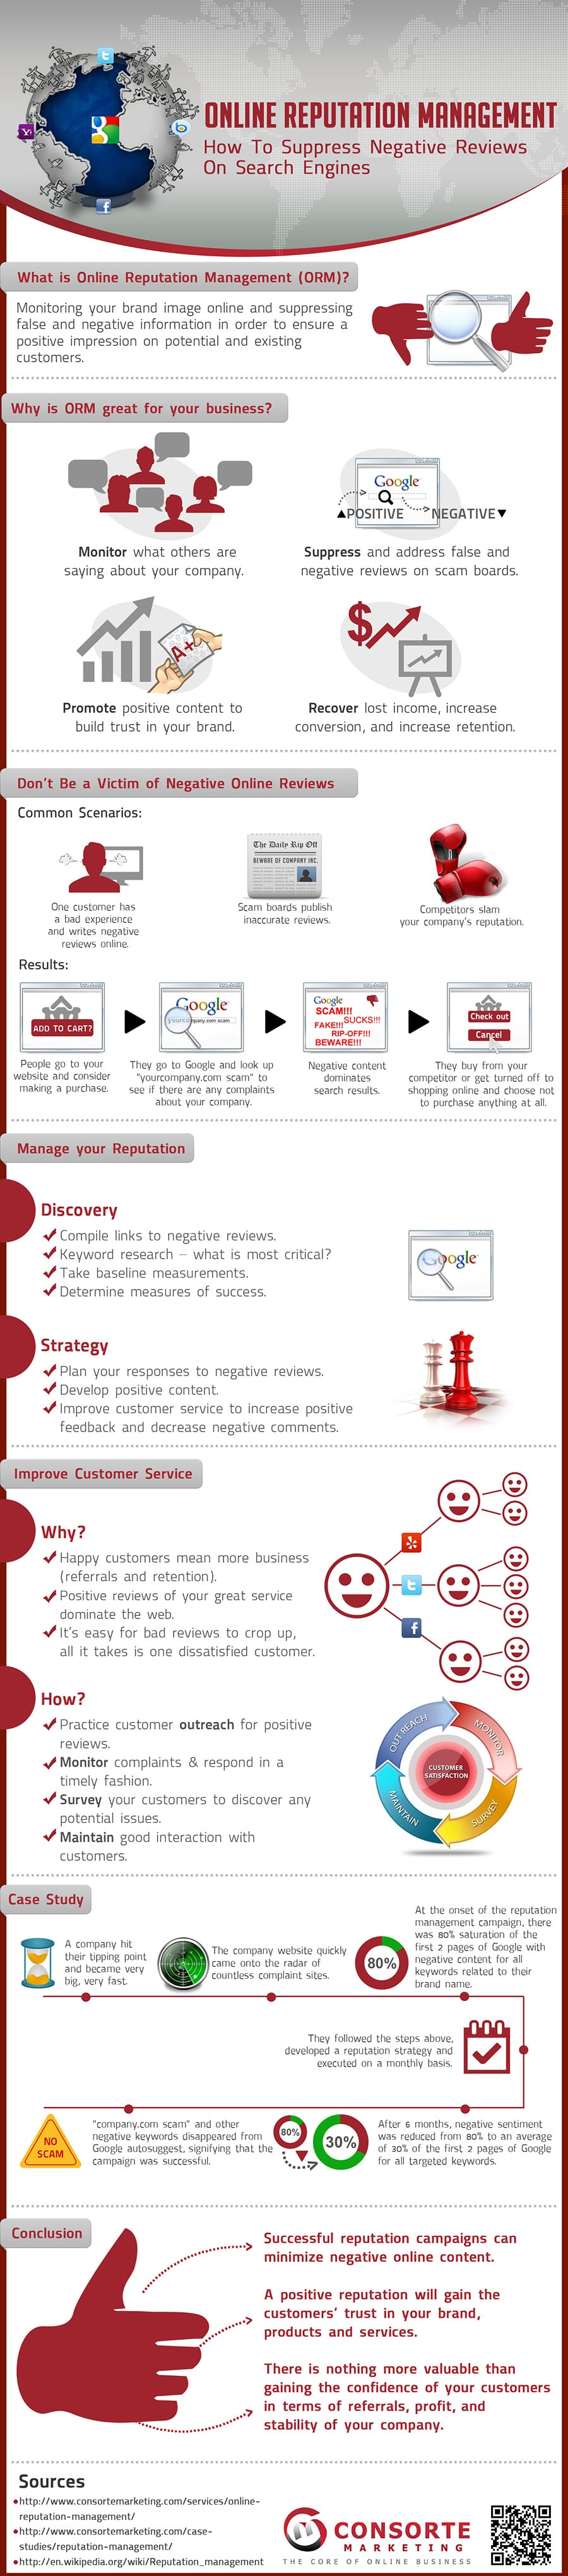 How To Fix Negative Reviews & Your Online Reputation [Infographic]